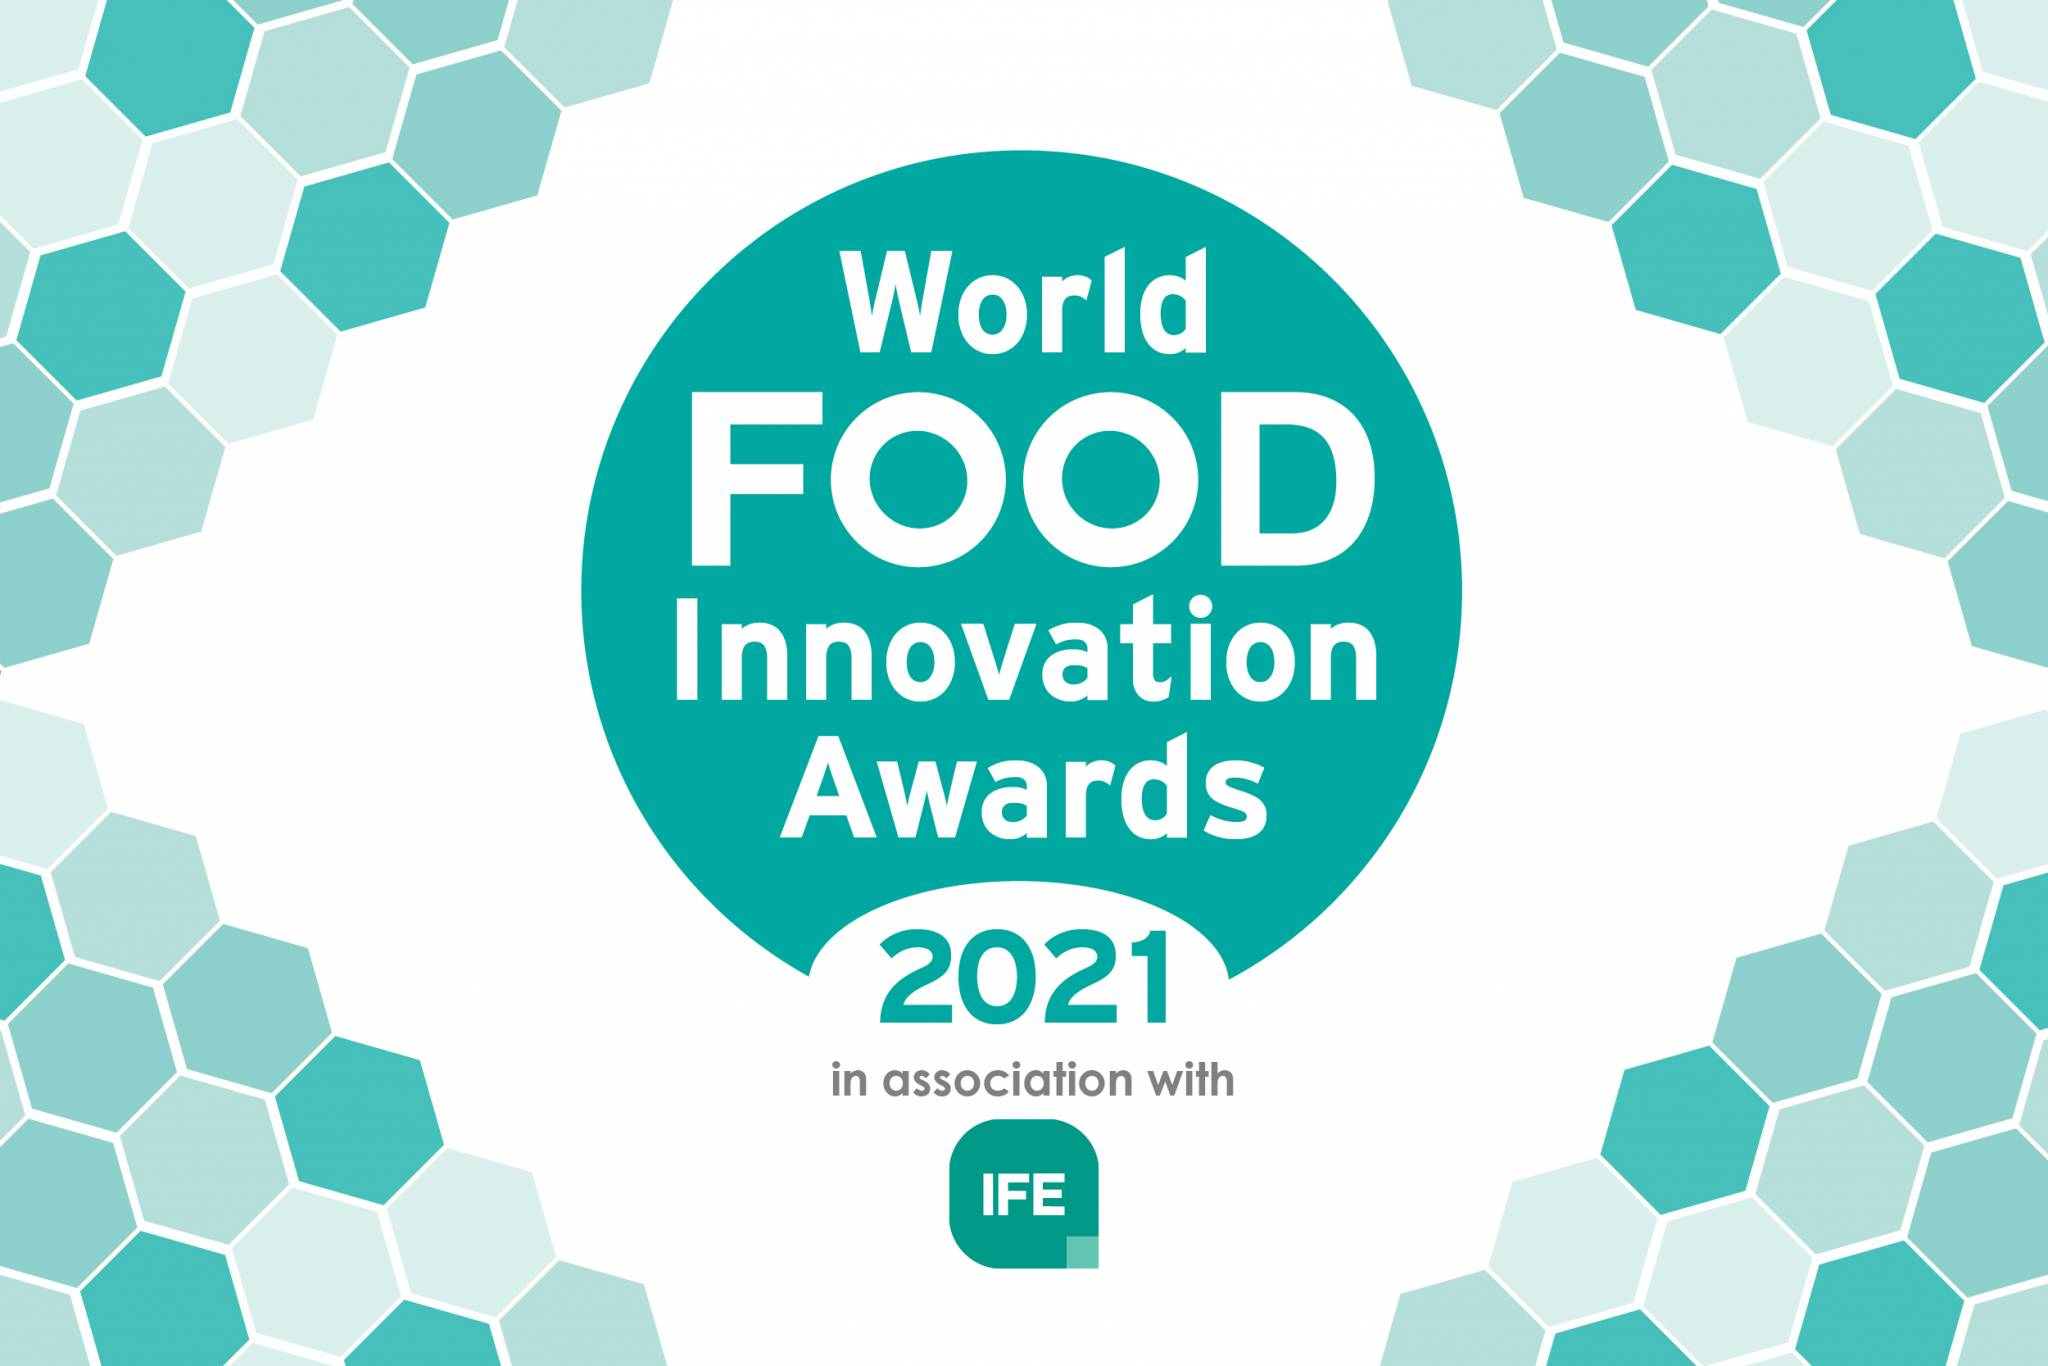 World Food Innovation Awards 2021 judging panel announced!